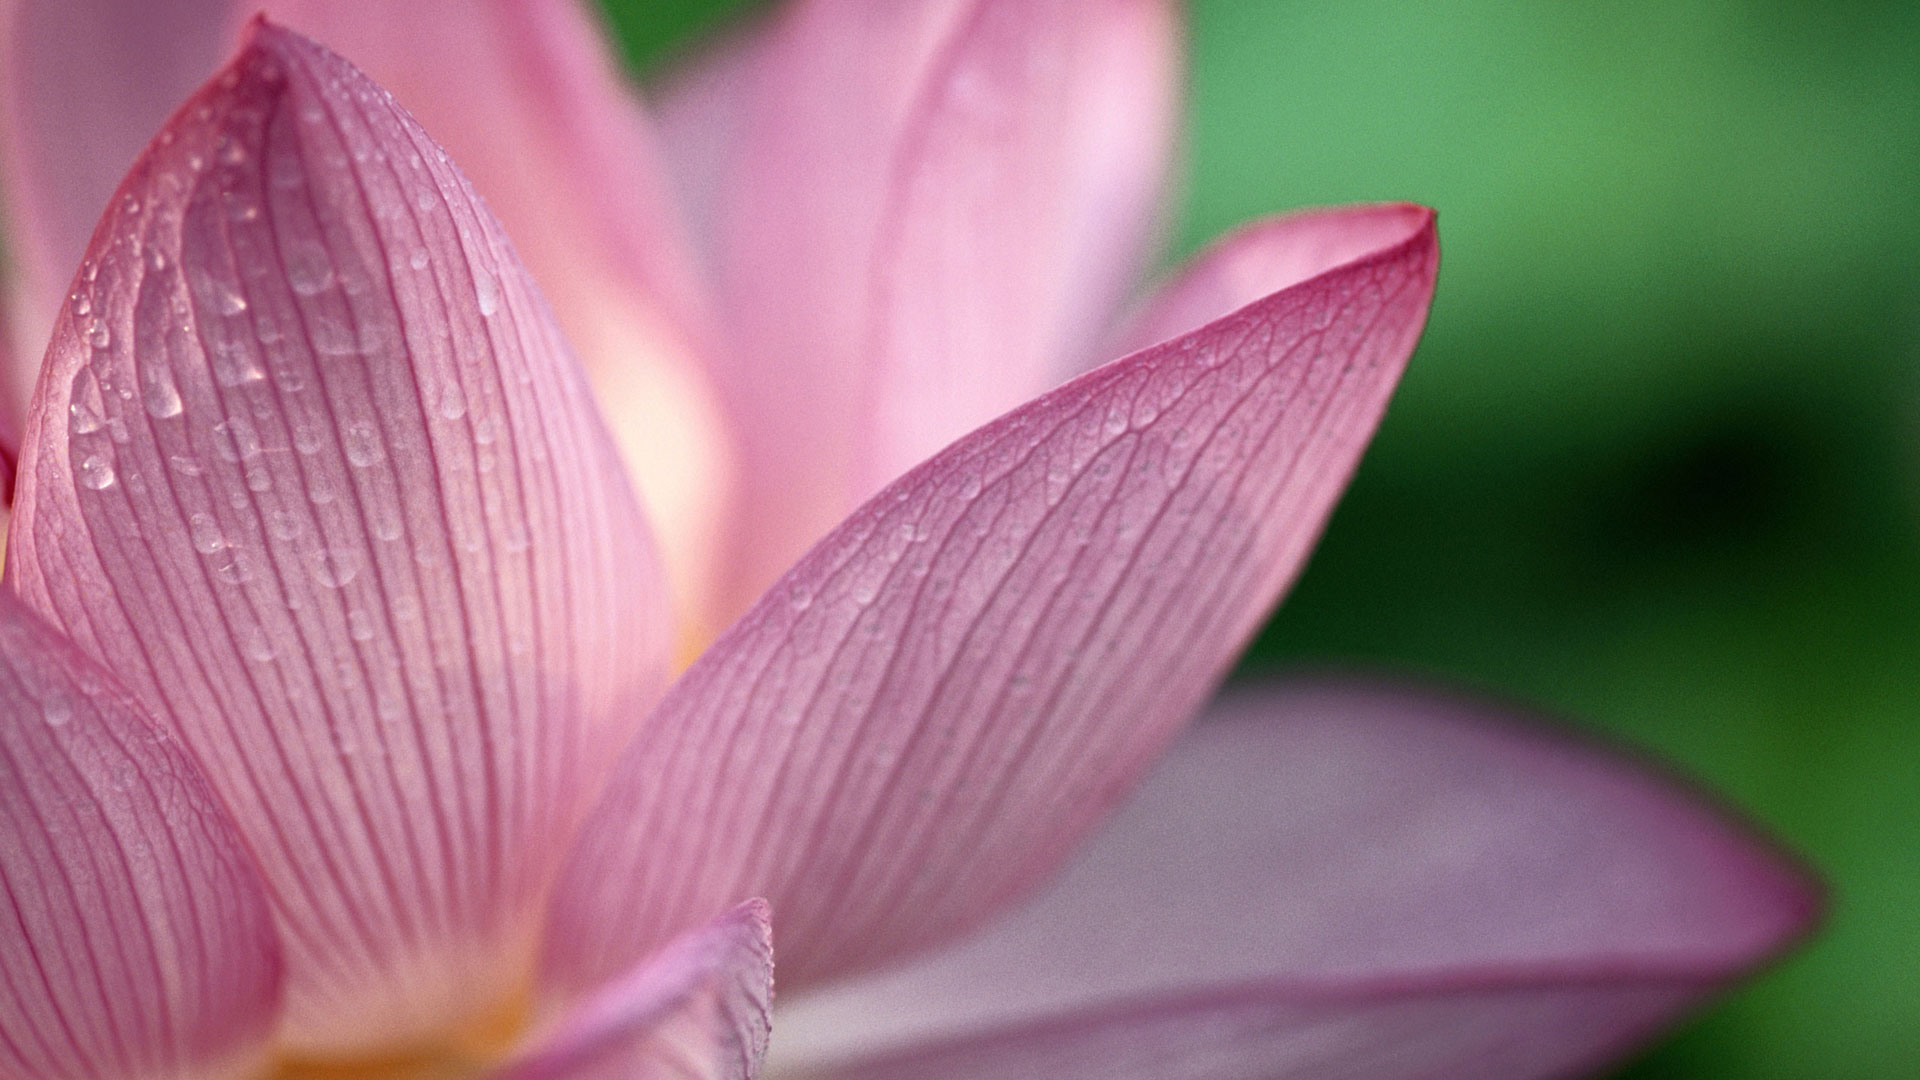 Lotus Bettles Hd Flower Wallpaper Photos Free Download